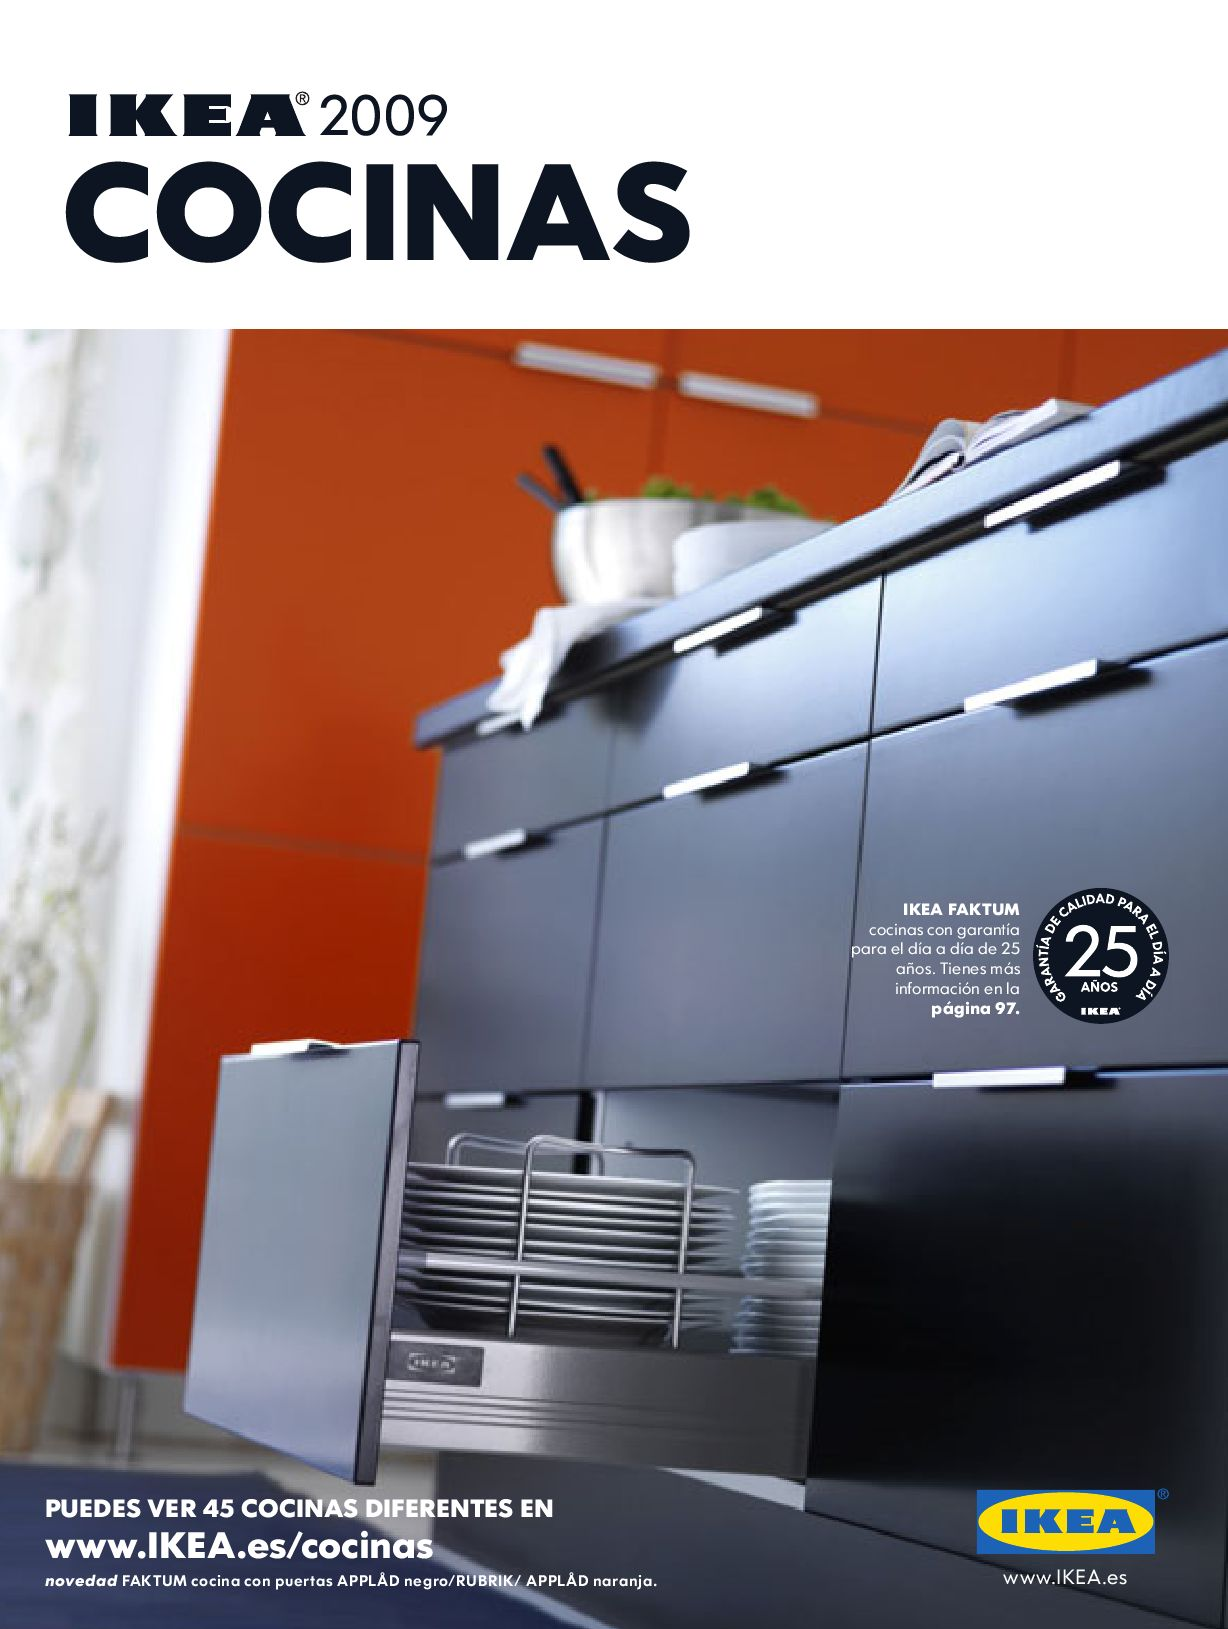 Greenbox demo cocinas integrales by greenbox software issuu - Catalogo ikea 2008 ...